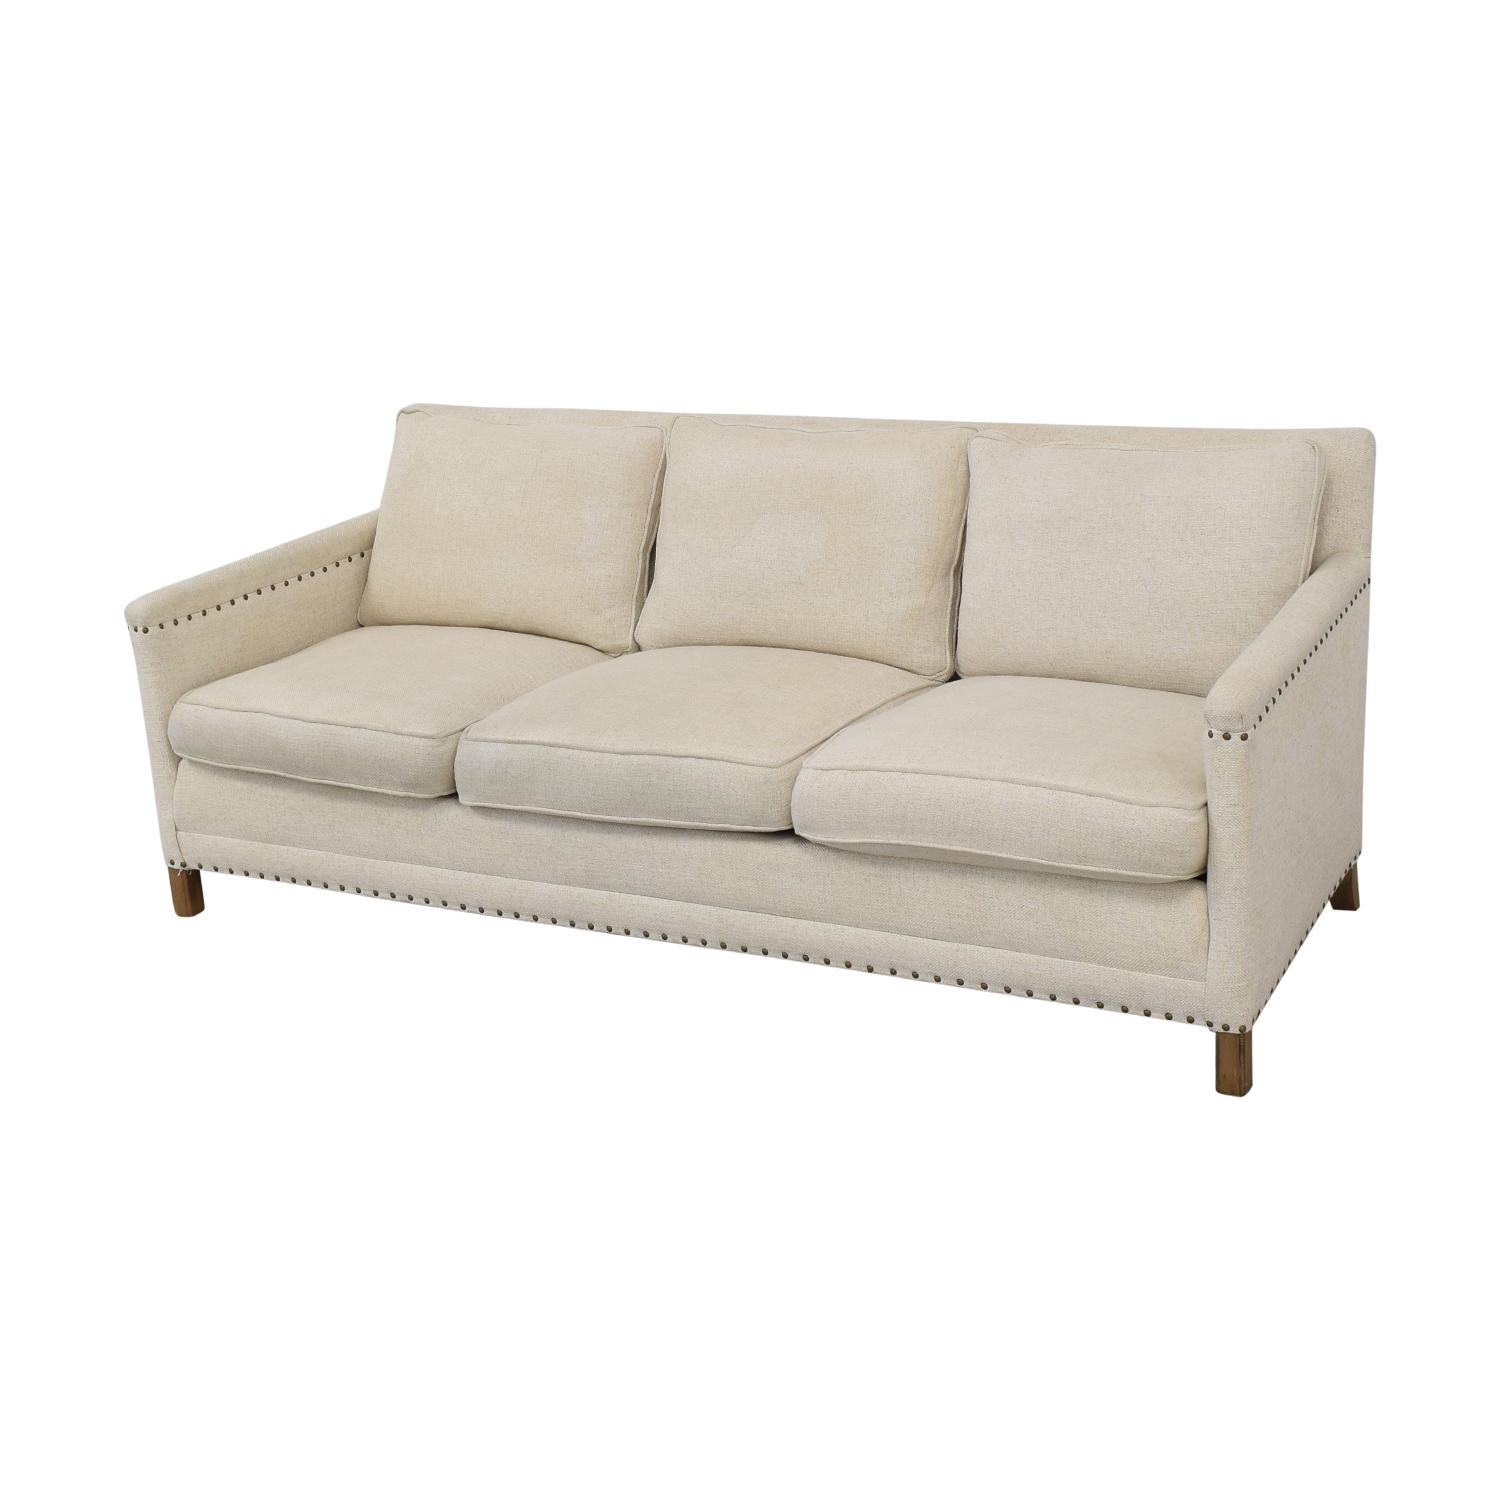 68% OFF - Crate & Barrel Crate & Barrel Trevor Apartment Sofa in Oatmeal /  Sofas